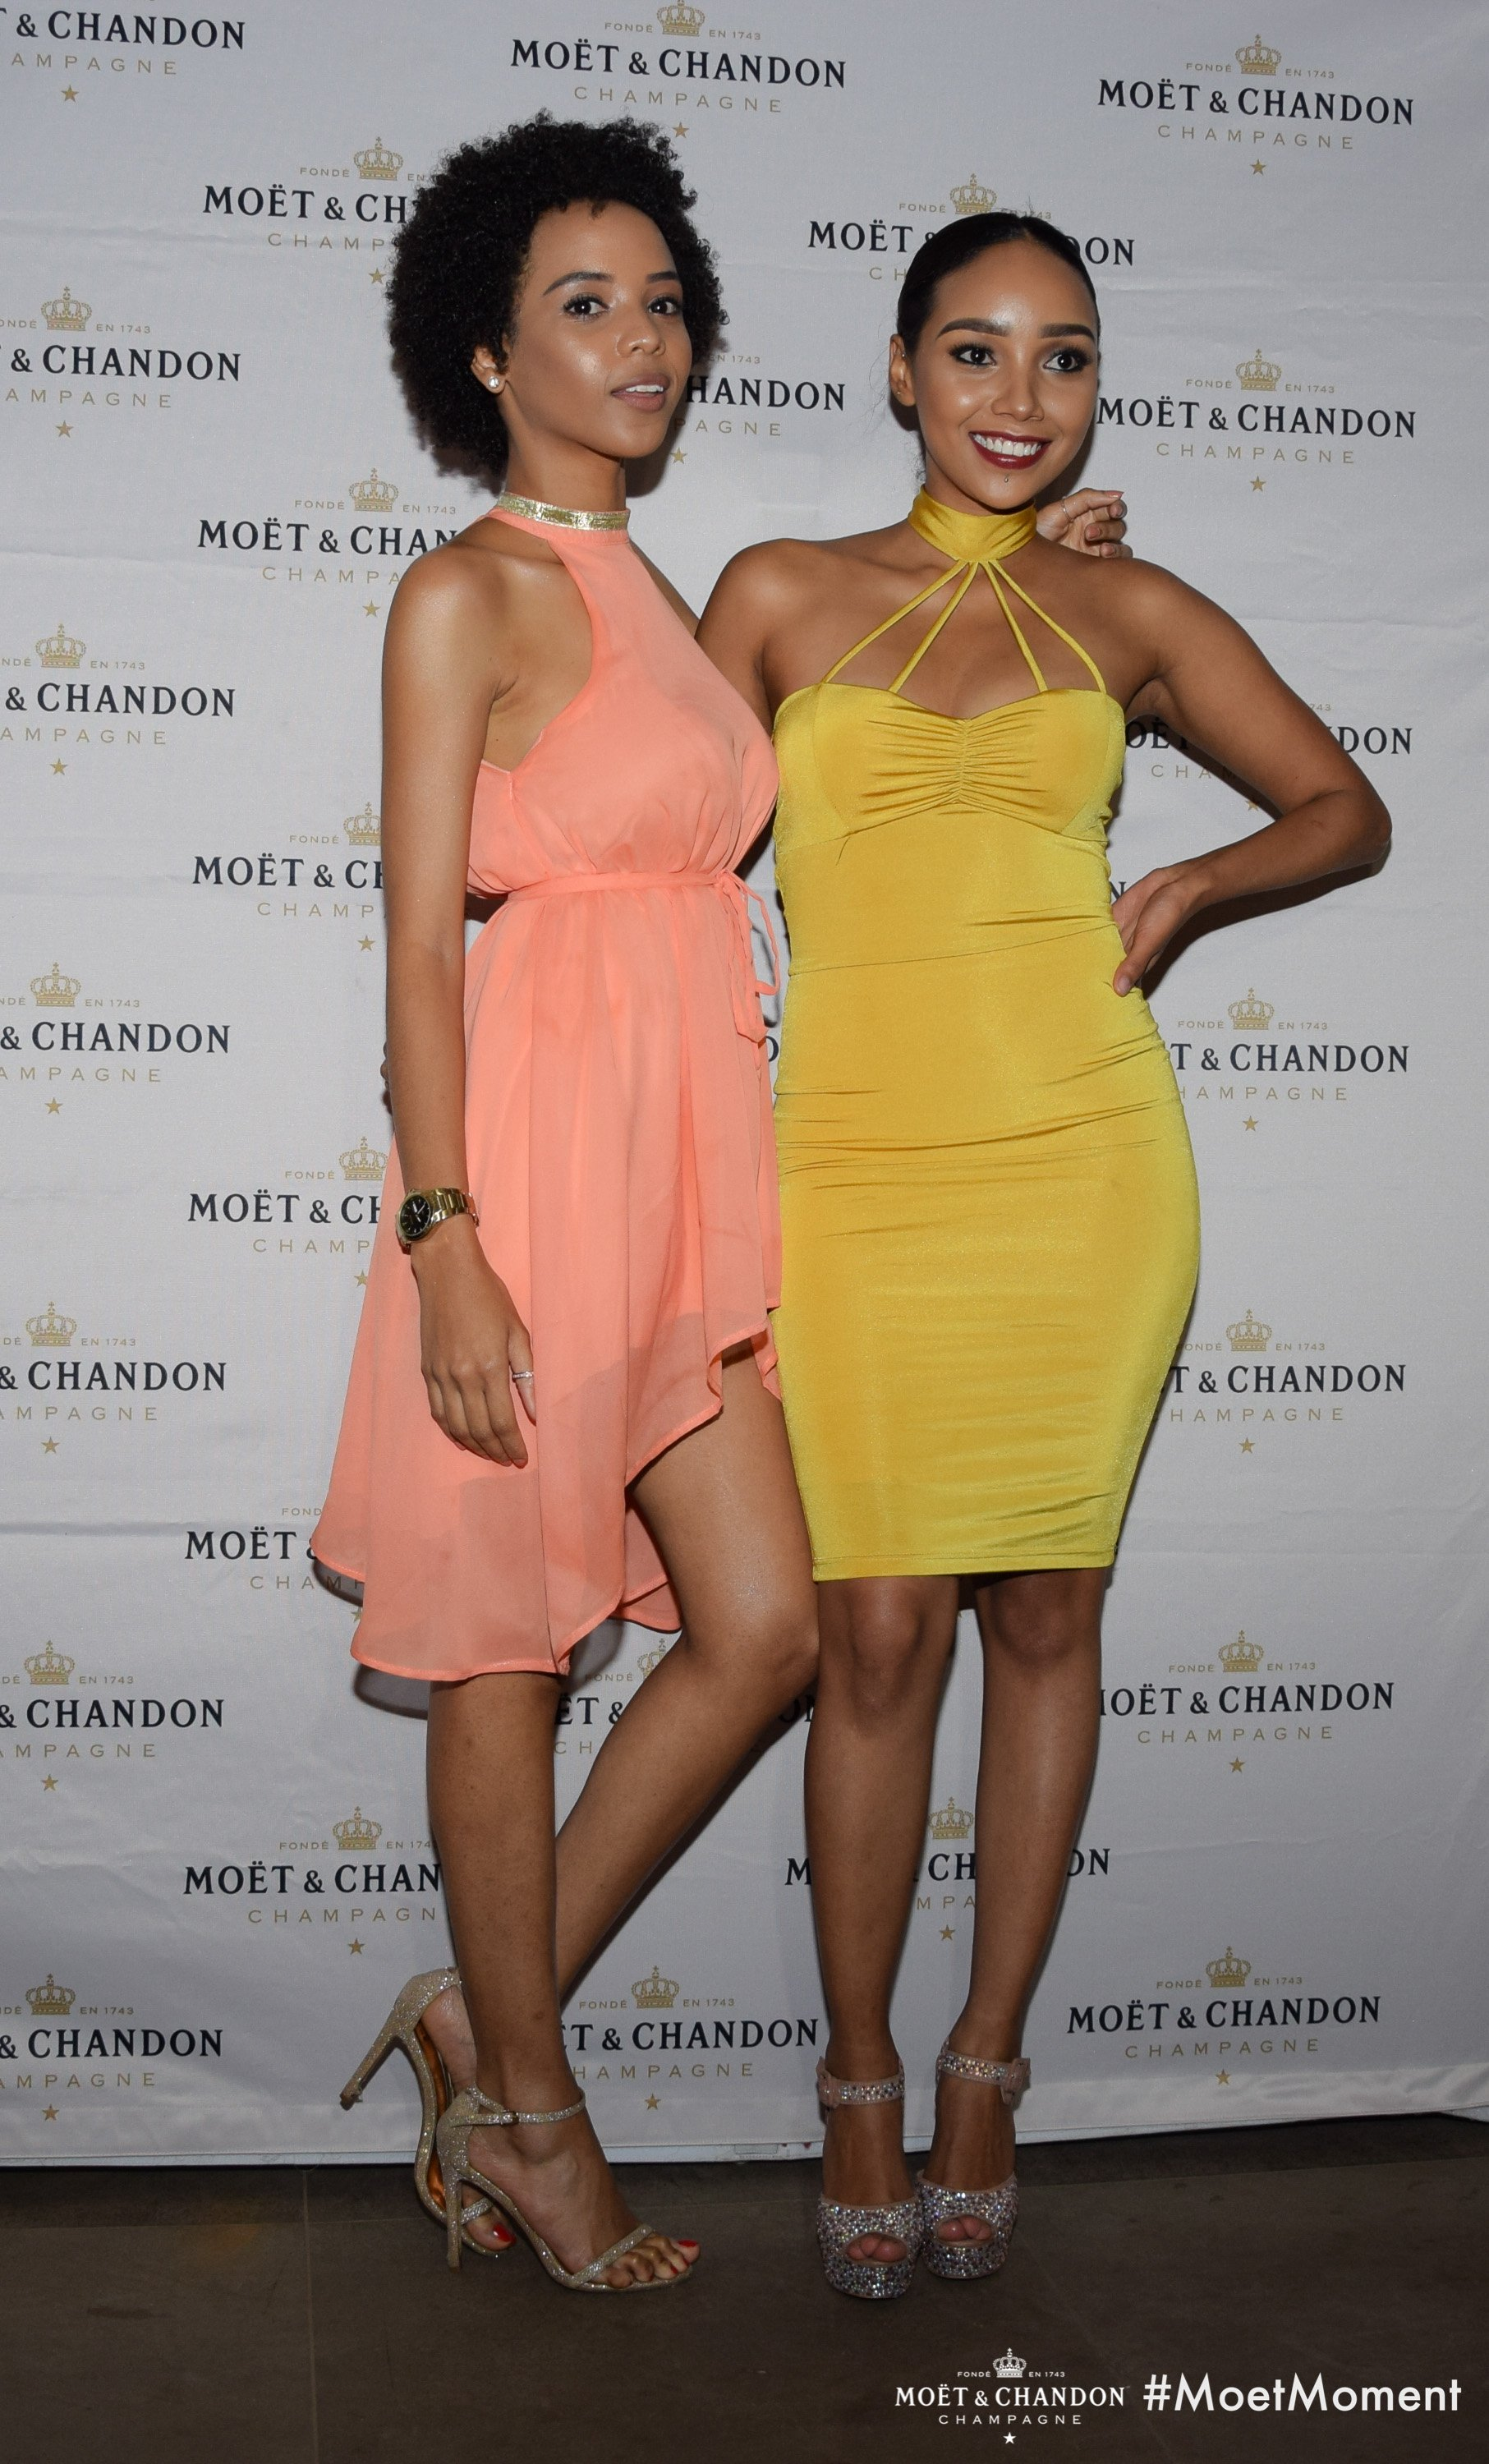 This is how the Moet & Chandon Luxury Dinner went down last night at Sankara; yes, Kenyan female celebrities were dressed to kill(PHOTOS)